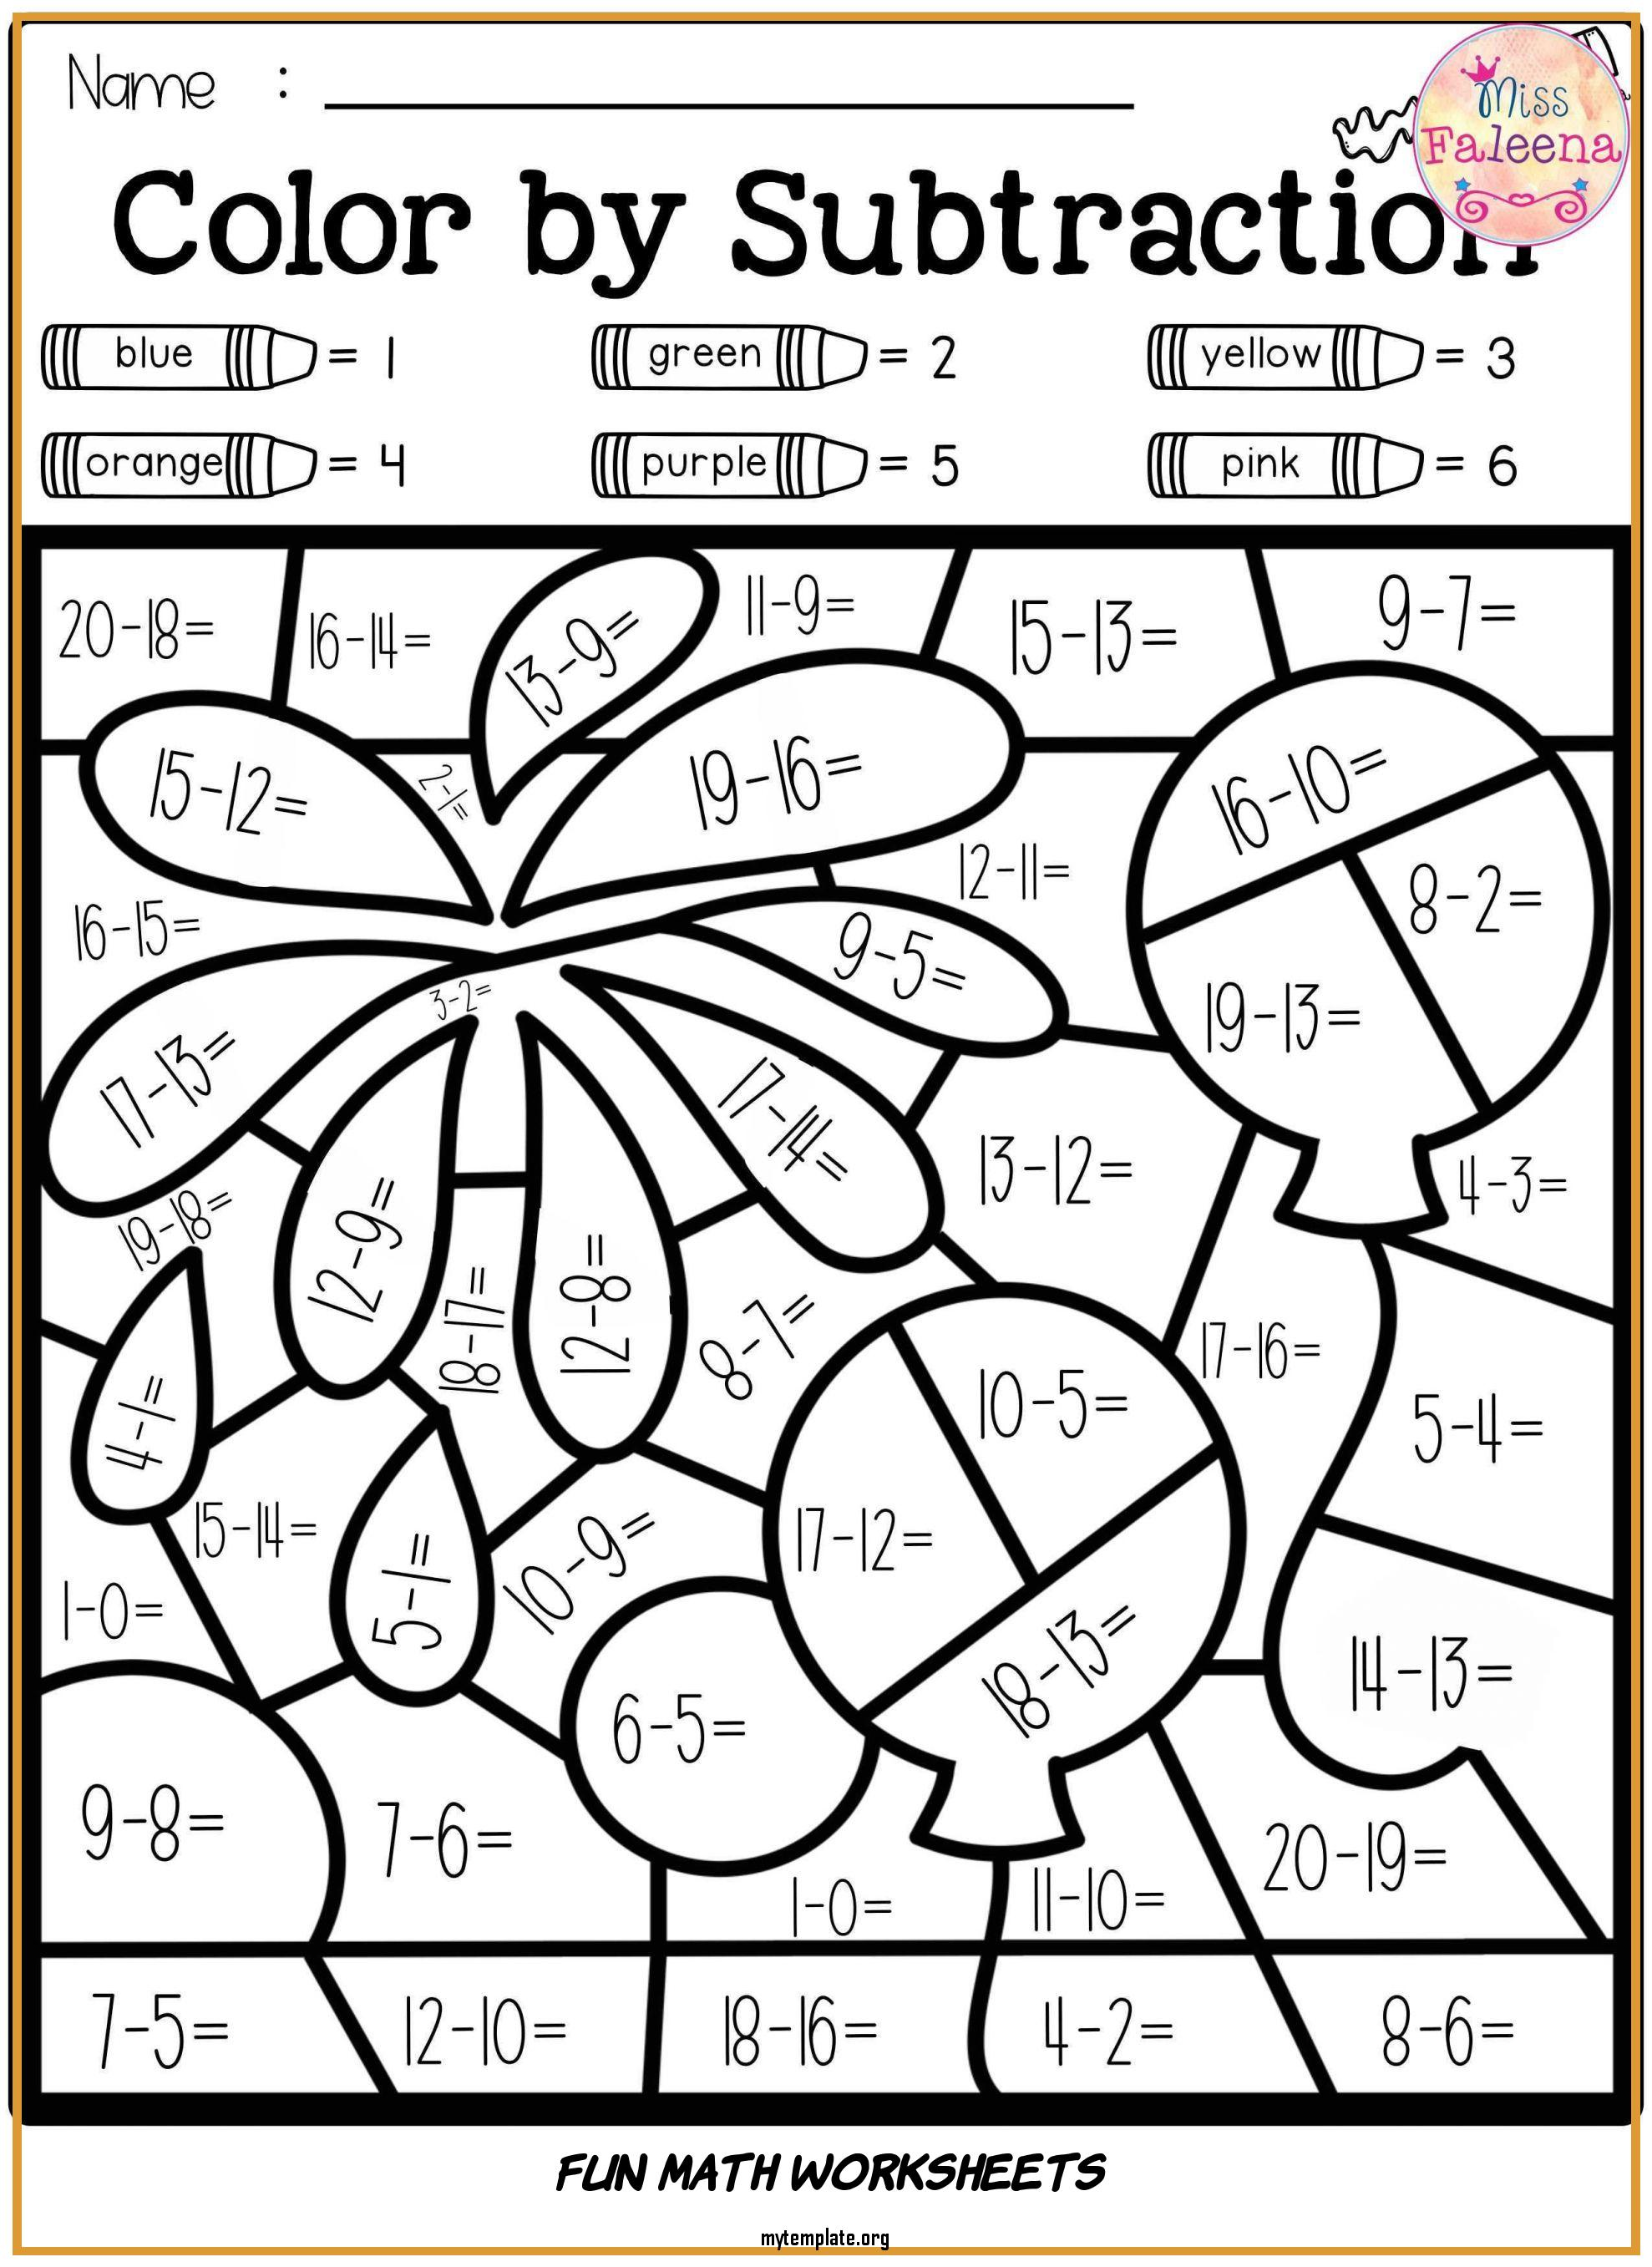 hight resolution of 7 Fun Math Worksheets - Free Templates